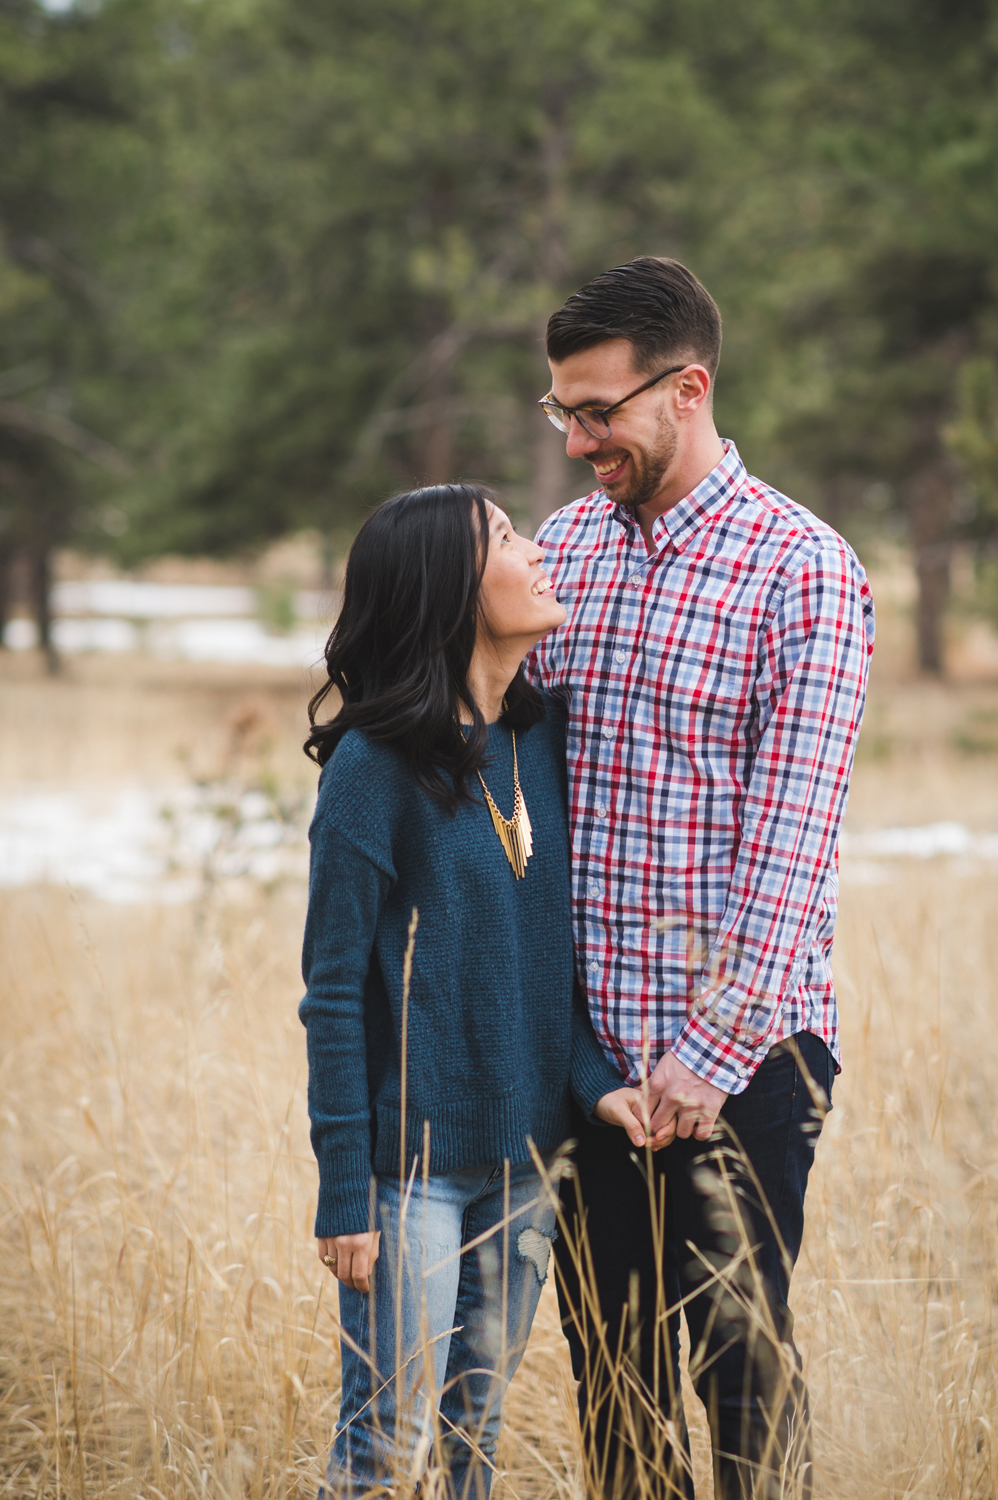 TiffanyandMark_Engaged_0108_squarespace.jpg